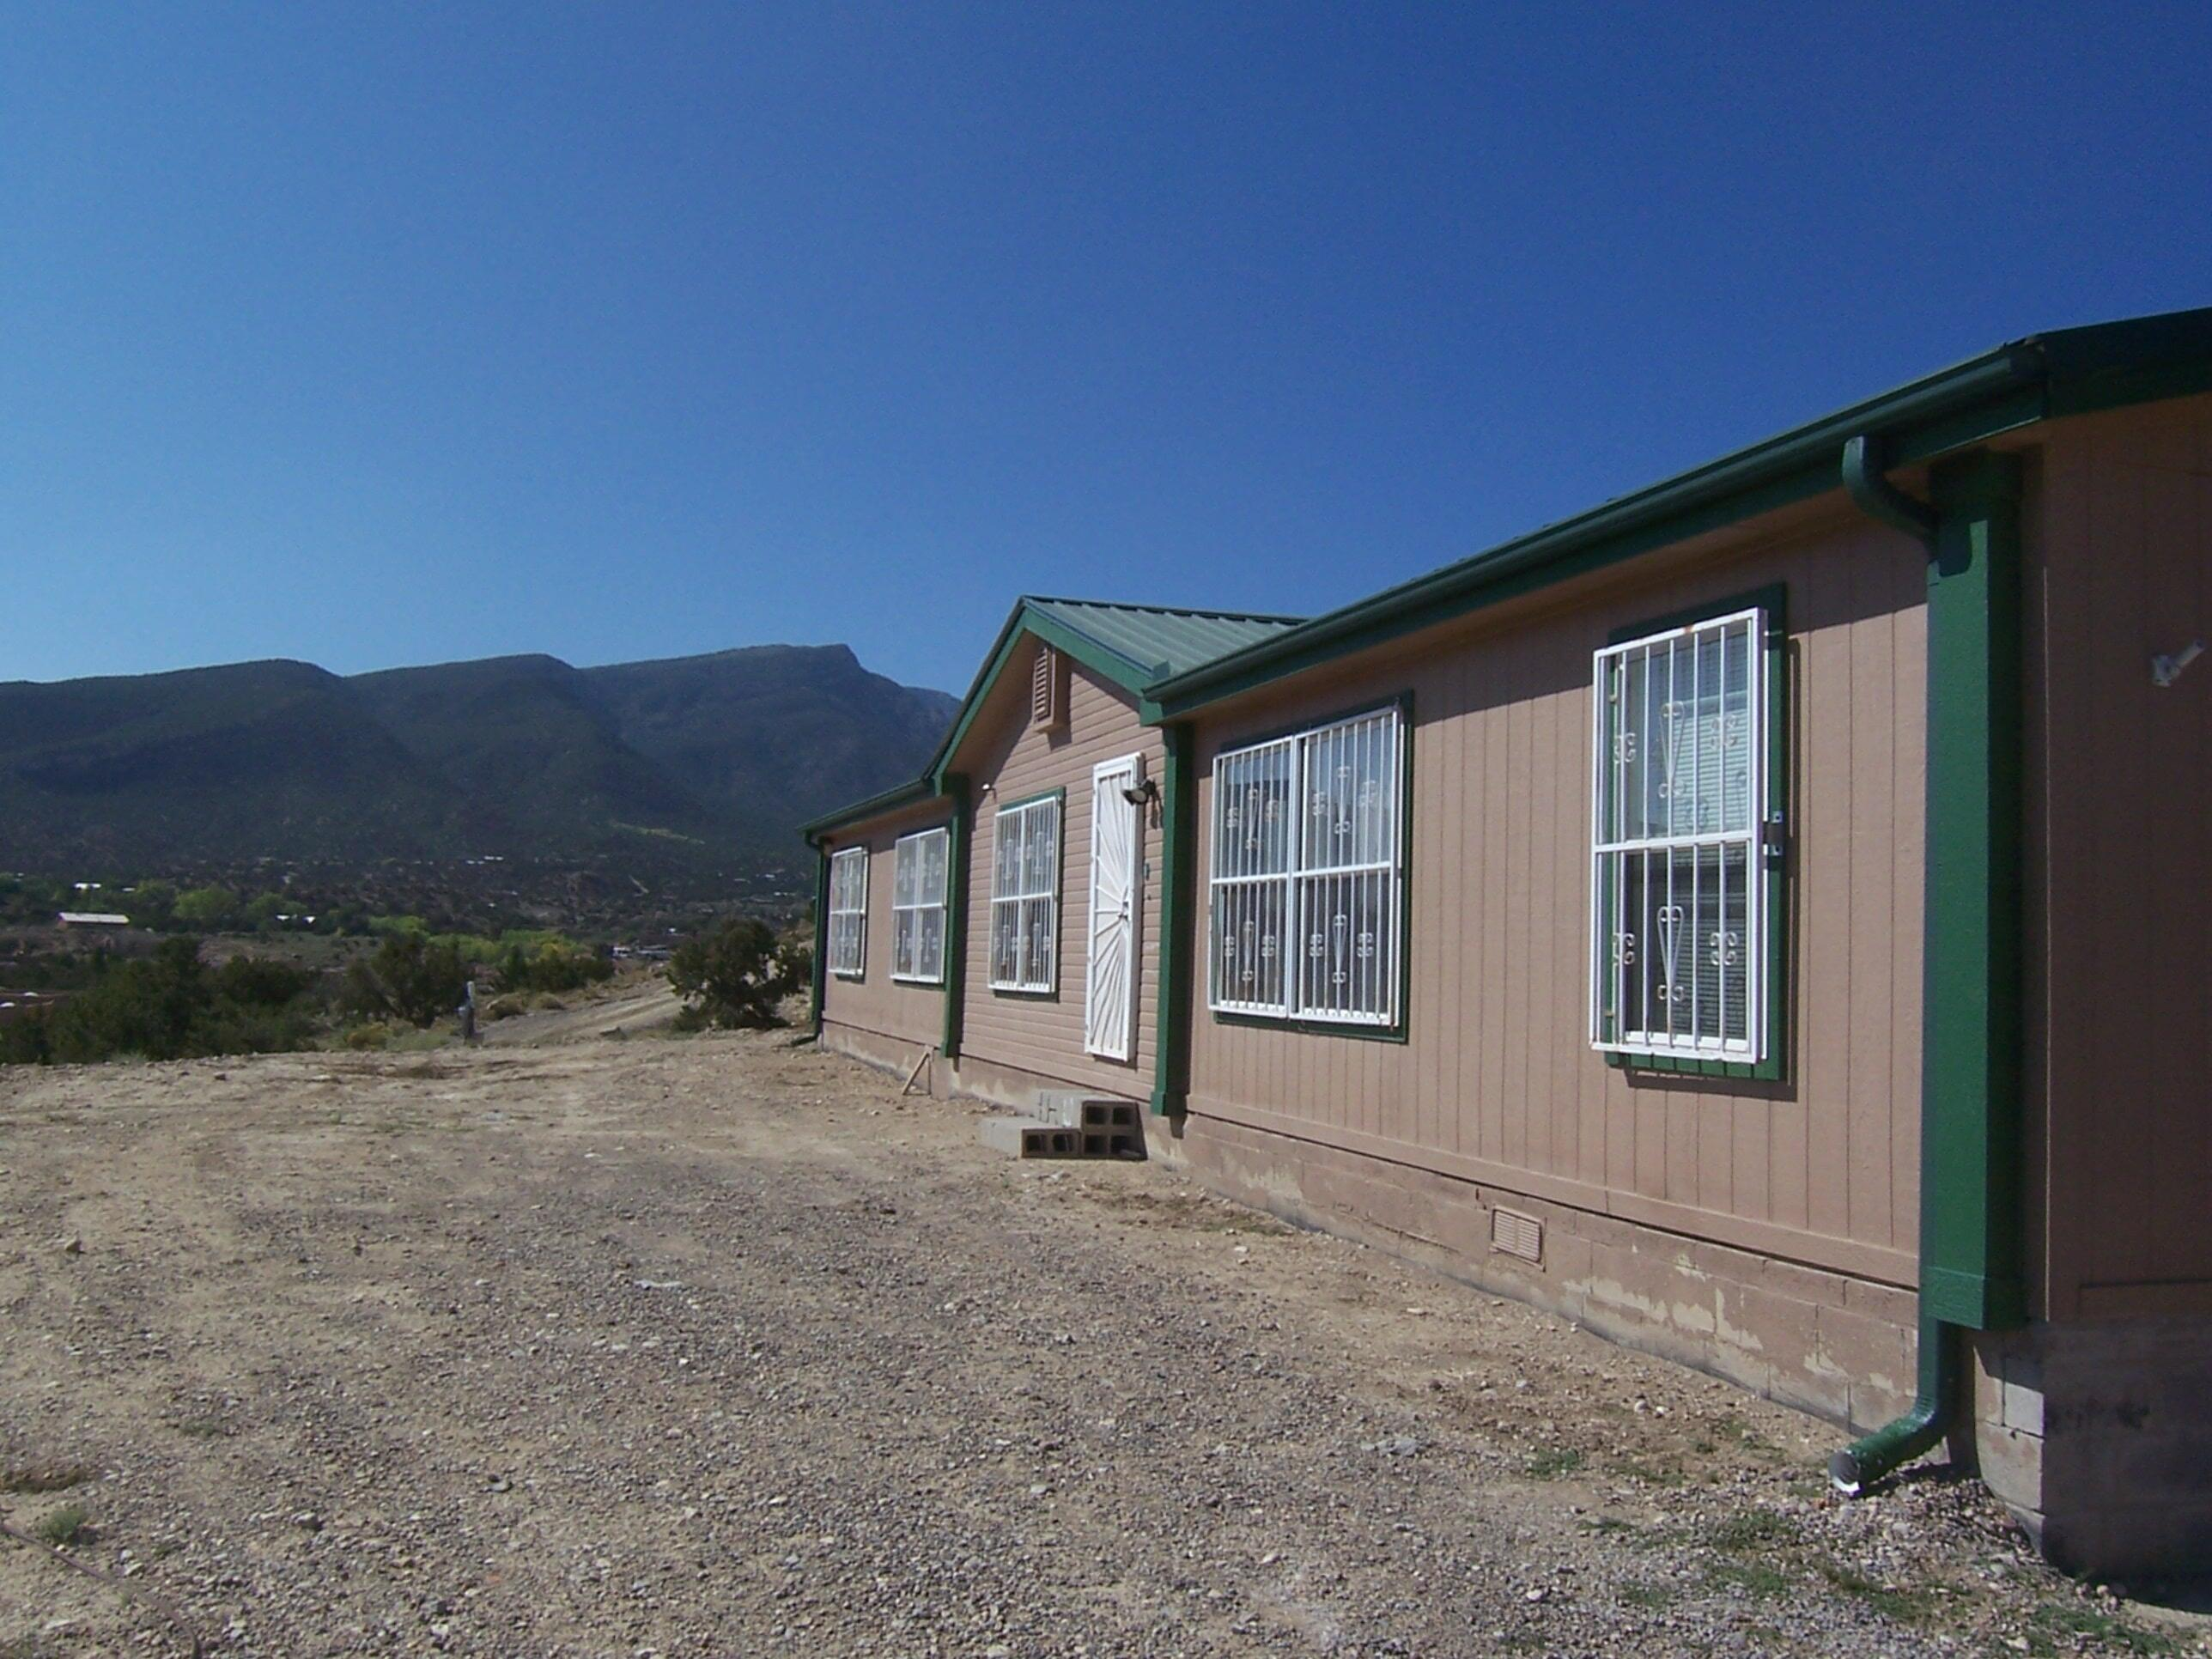 3 BEDROOM + OFFICE WITH 2.5 BATHS - ON 1.6 ACRES! $250,000. Affordable 2170 sq ft manufactured home on permanent foundation in Placitas. Just 1/4 mile off paved road with big Sandia views! Great floor plan with spacious separate master suite plus 2 guest bedrooms and office/4th BR. 2.5 baths, living room, family room and dining room! Open floor plan! Master has sitting room, big walk-in closet, double sinks, garden tub and separate shower! Large, open kitchen that was recently remodeled with custom cabinets, beautiful tile floors, raised ceilings! Low maintenance metal roof! 2 storage sheds plus well house. 1 car carport plus plenty of room to add on and for outdoor living. Home is on a 4 lot well share. No HOA, just very minimal covenants.